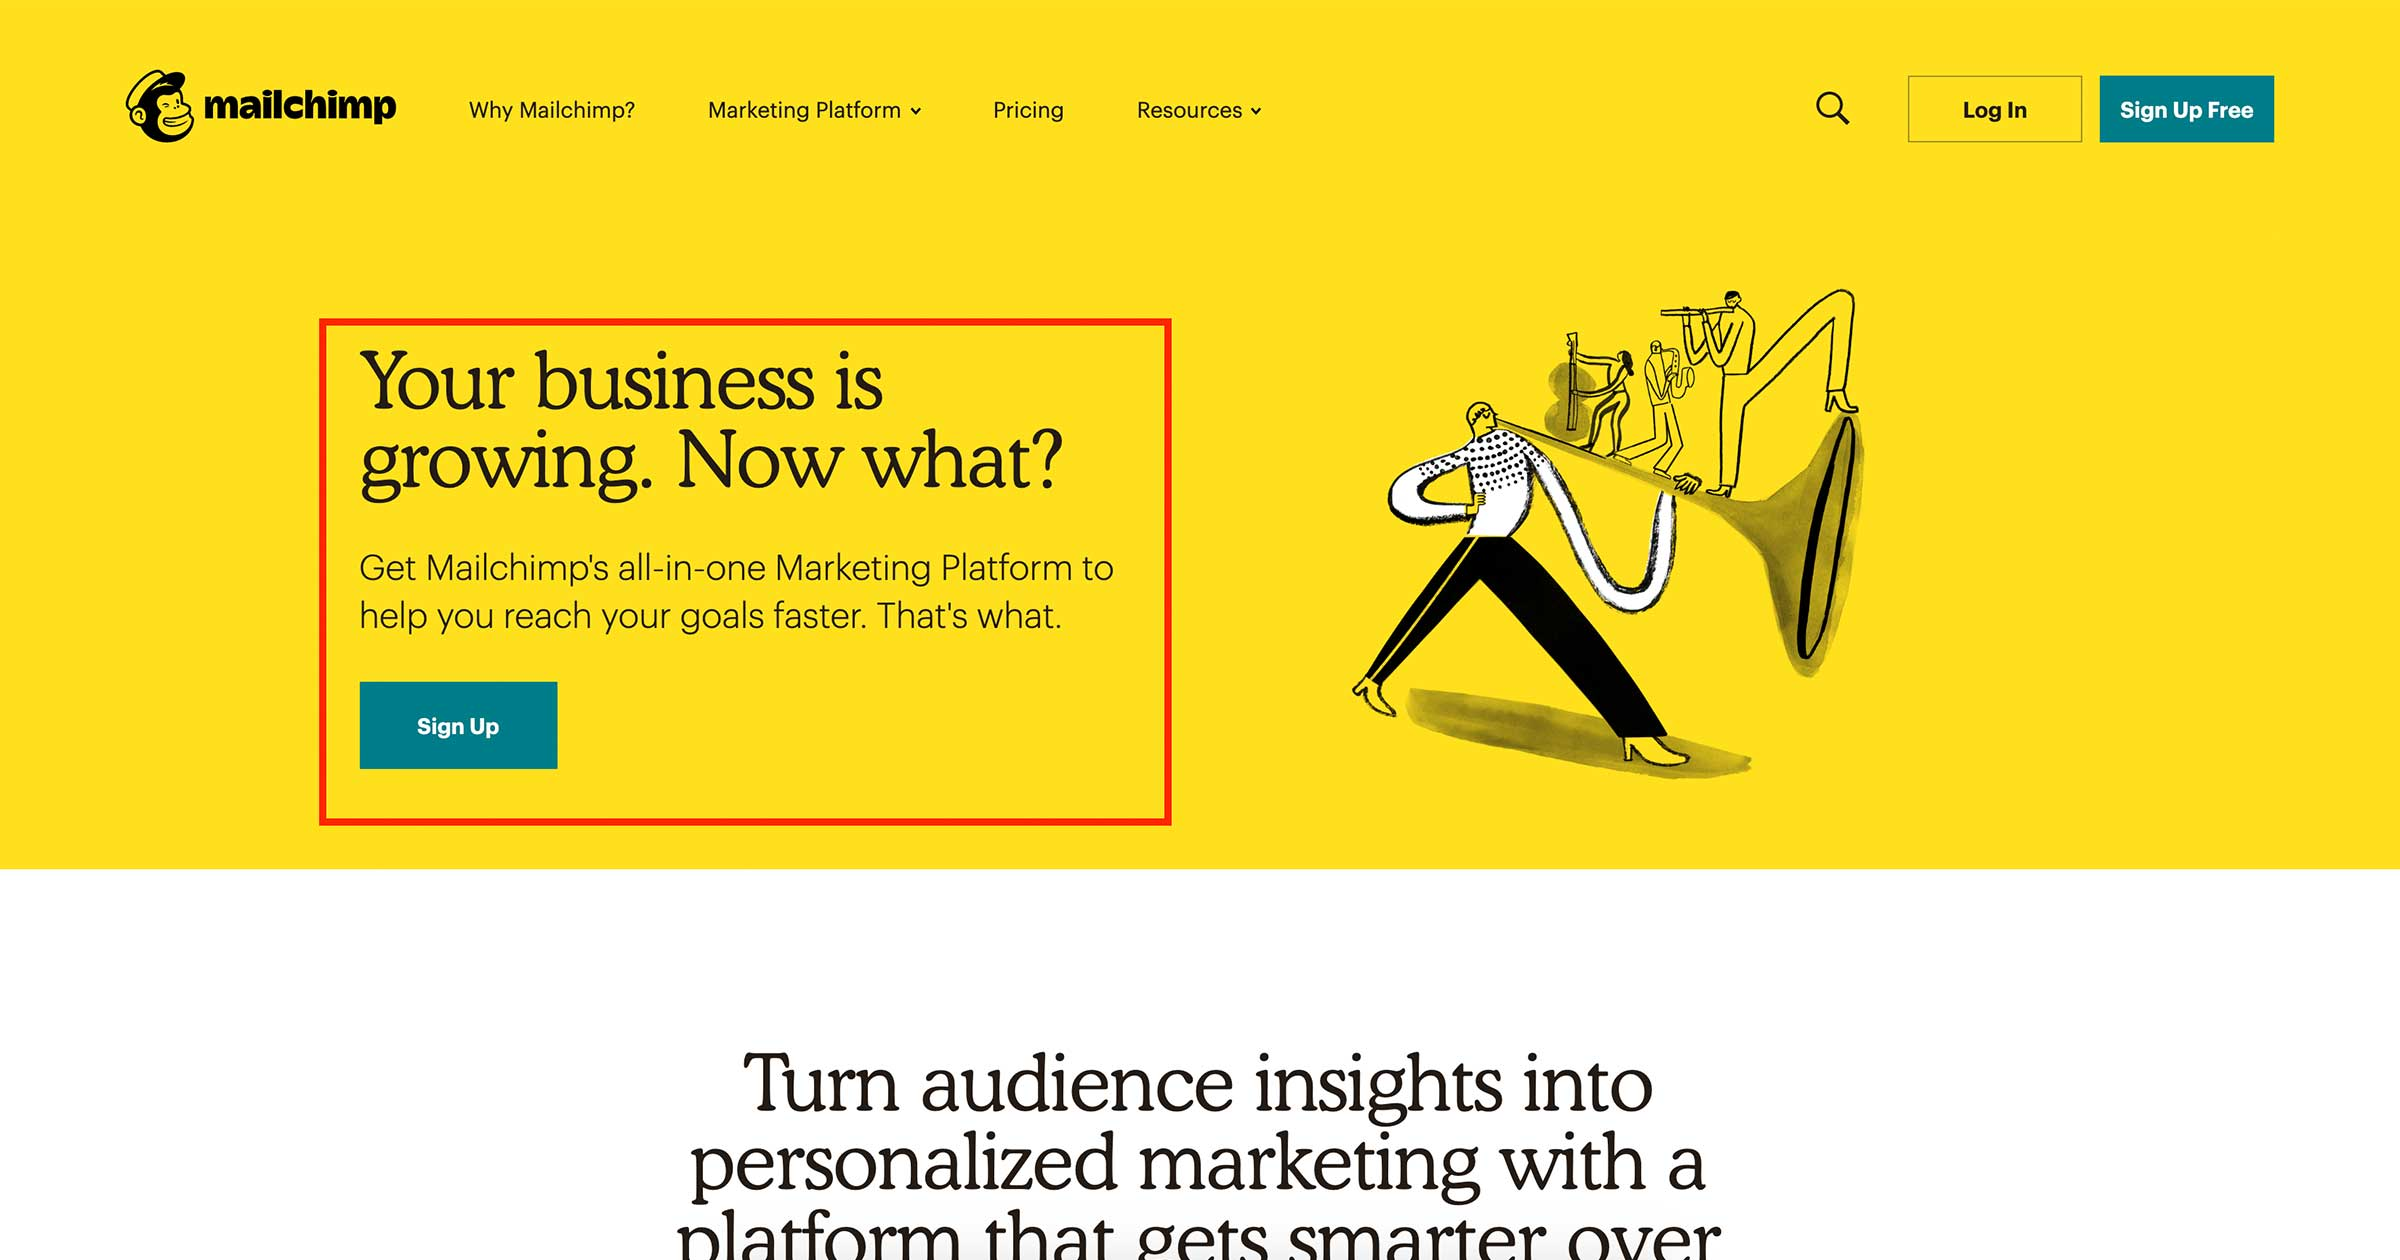 mailchimp marketing platform page